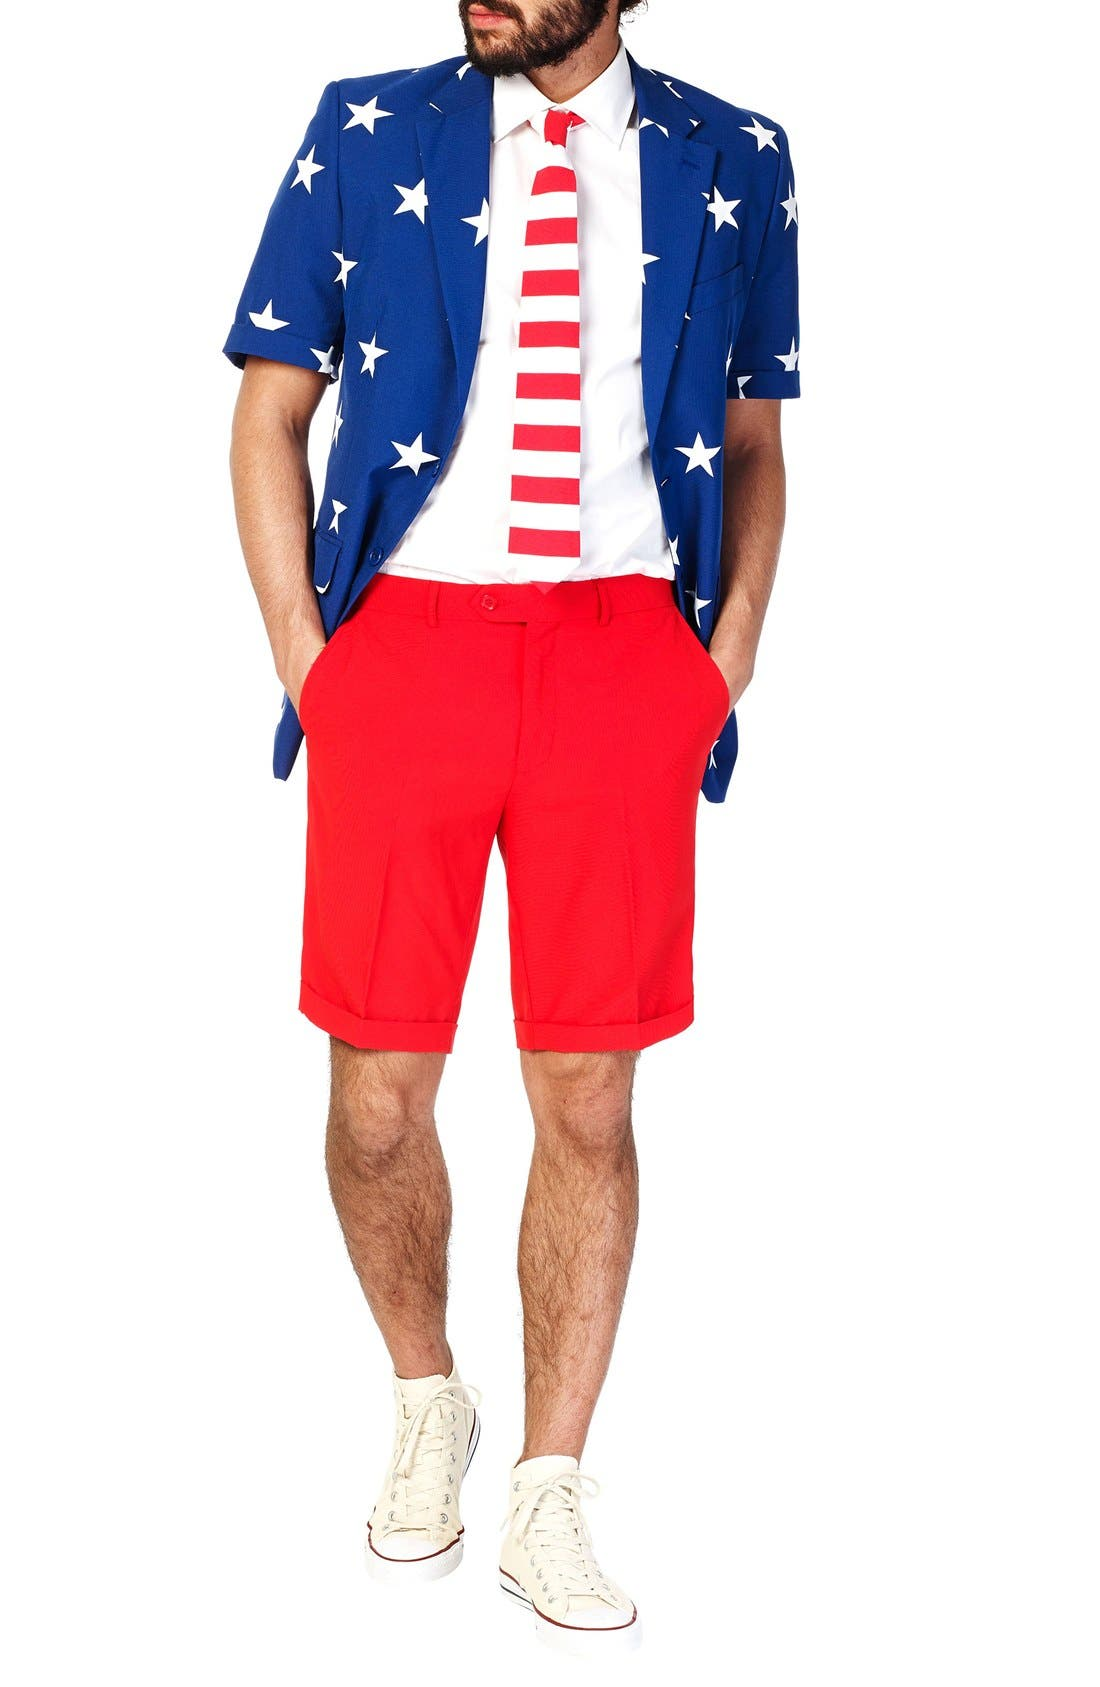 Main Image - OppoSuits 'Summer Stars & Stripes' Trim Fit Short Suit with Tie